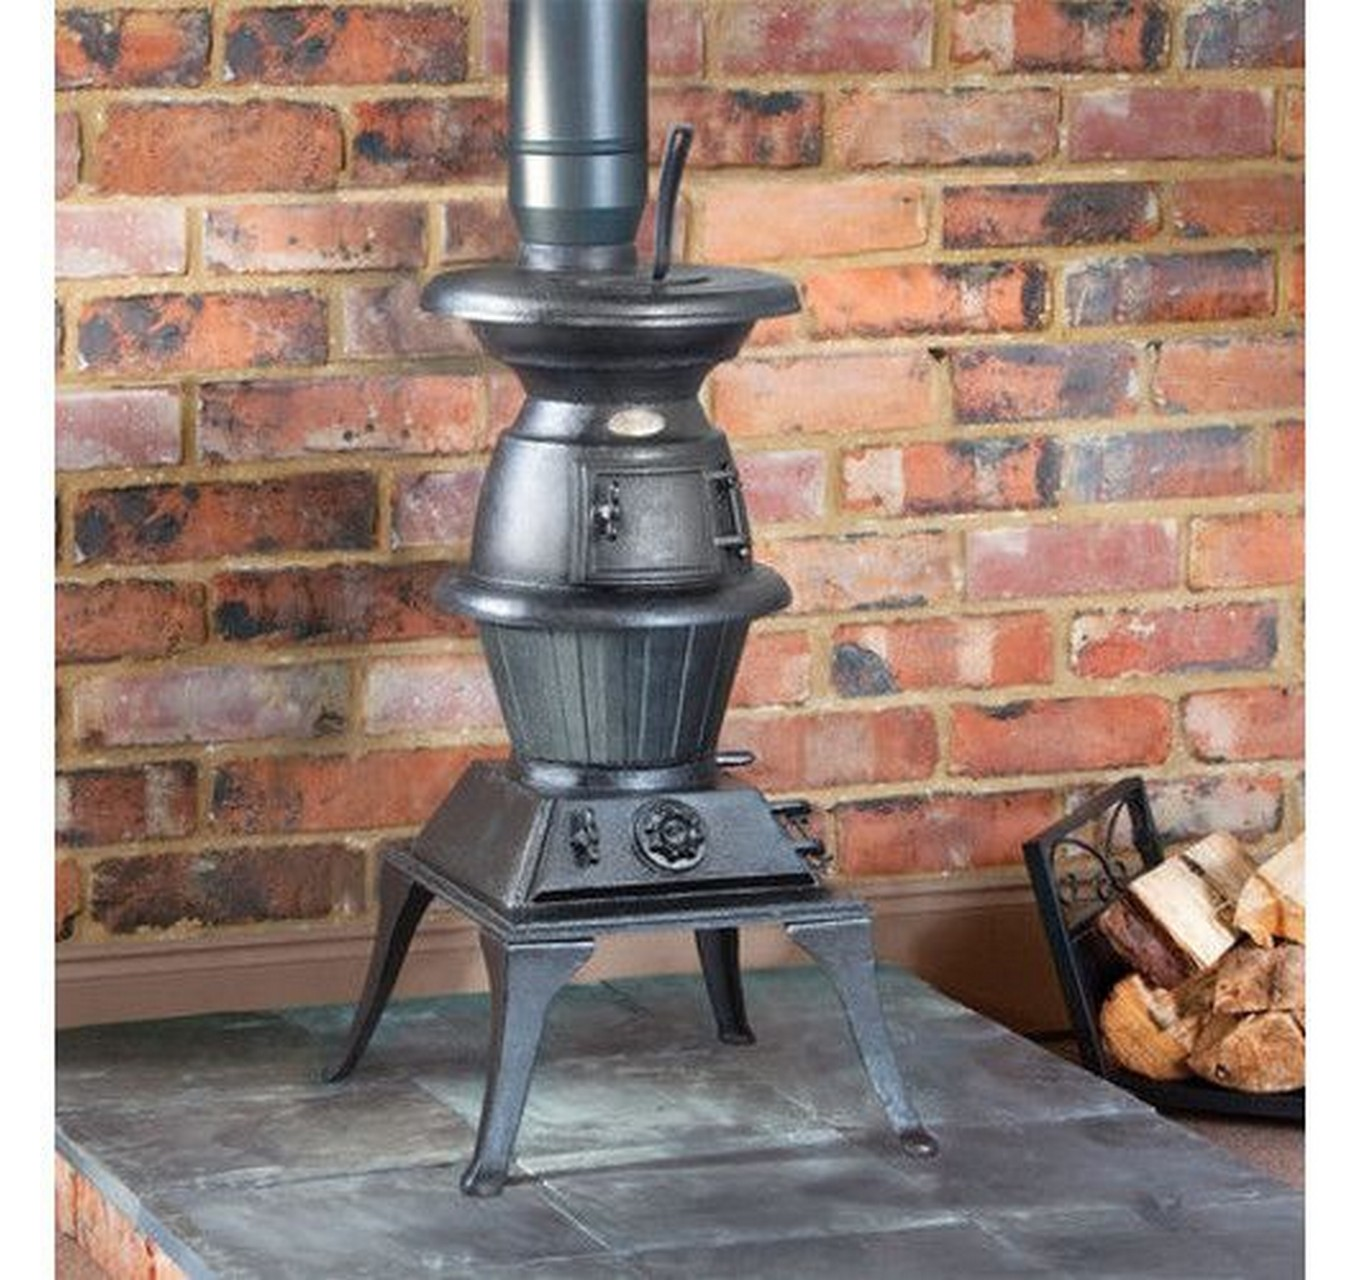 Pot Belly - Cast Iron Stove